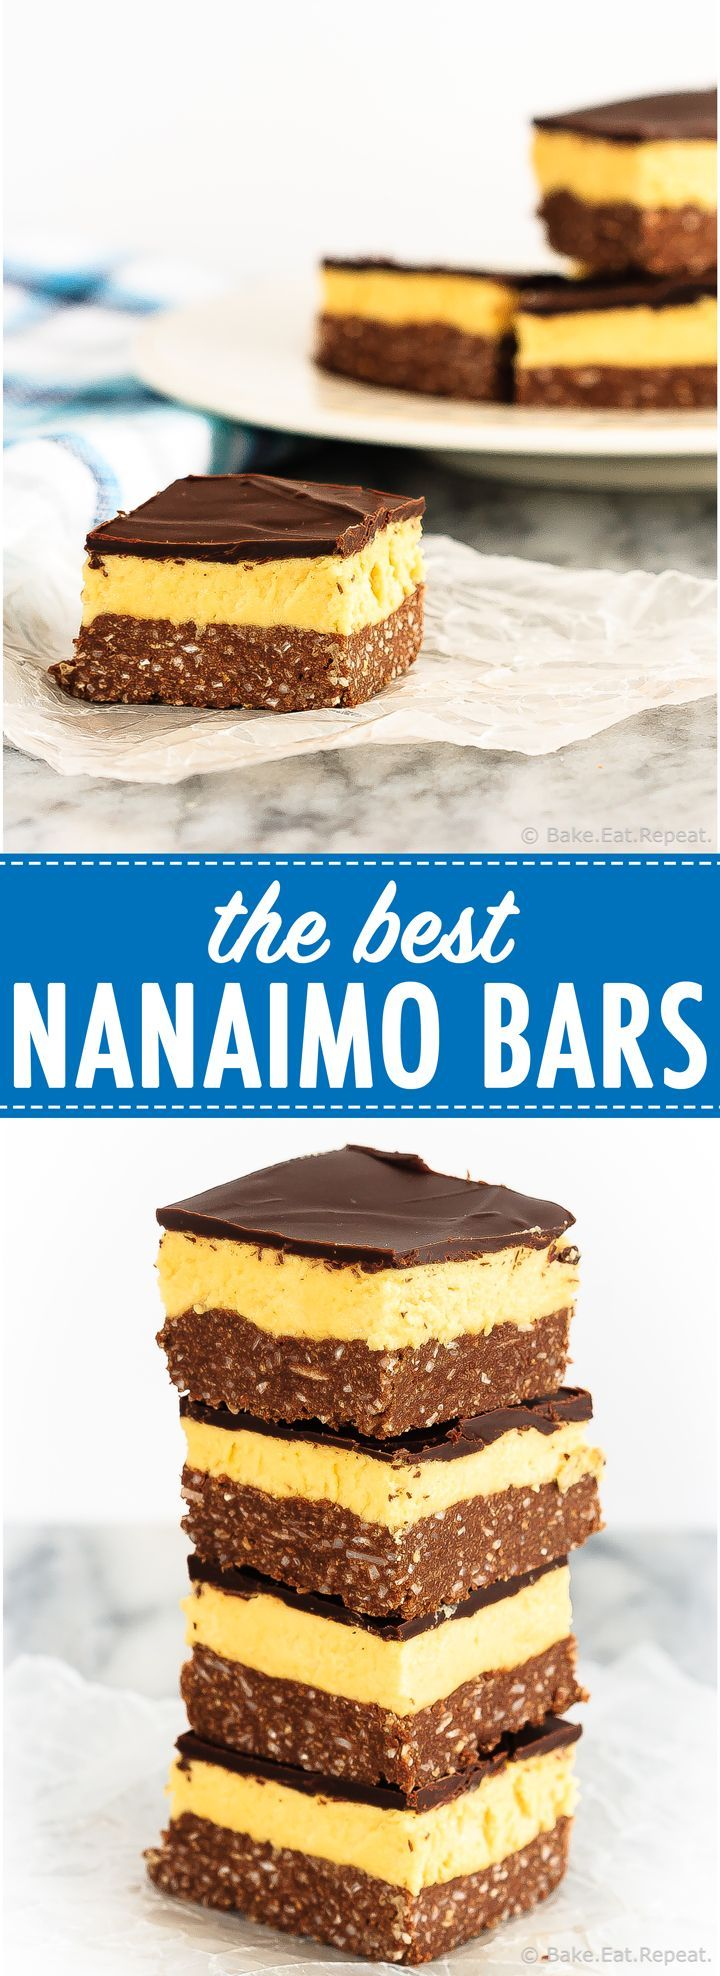 The Best Nanaimo Bars - These are the absolute best nanaimo bars, an amazing sweet treat that's a perfect addition to your holiday dessert table!